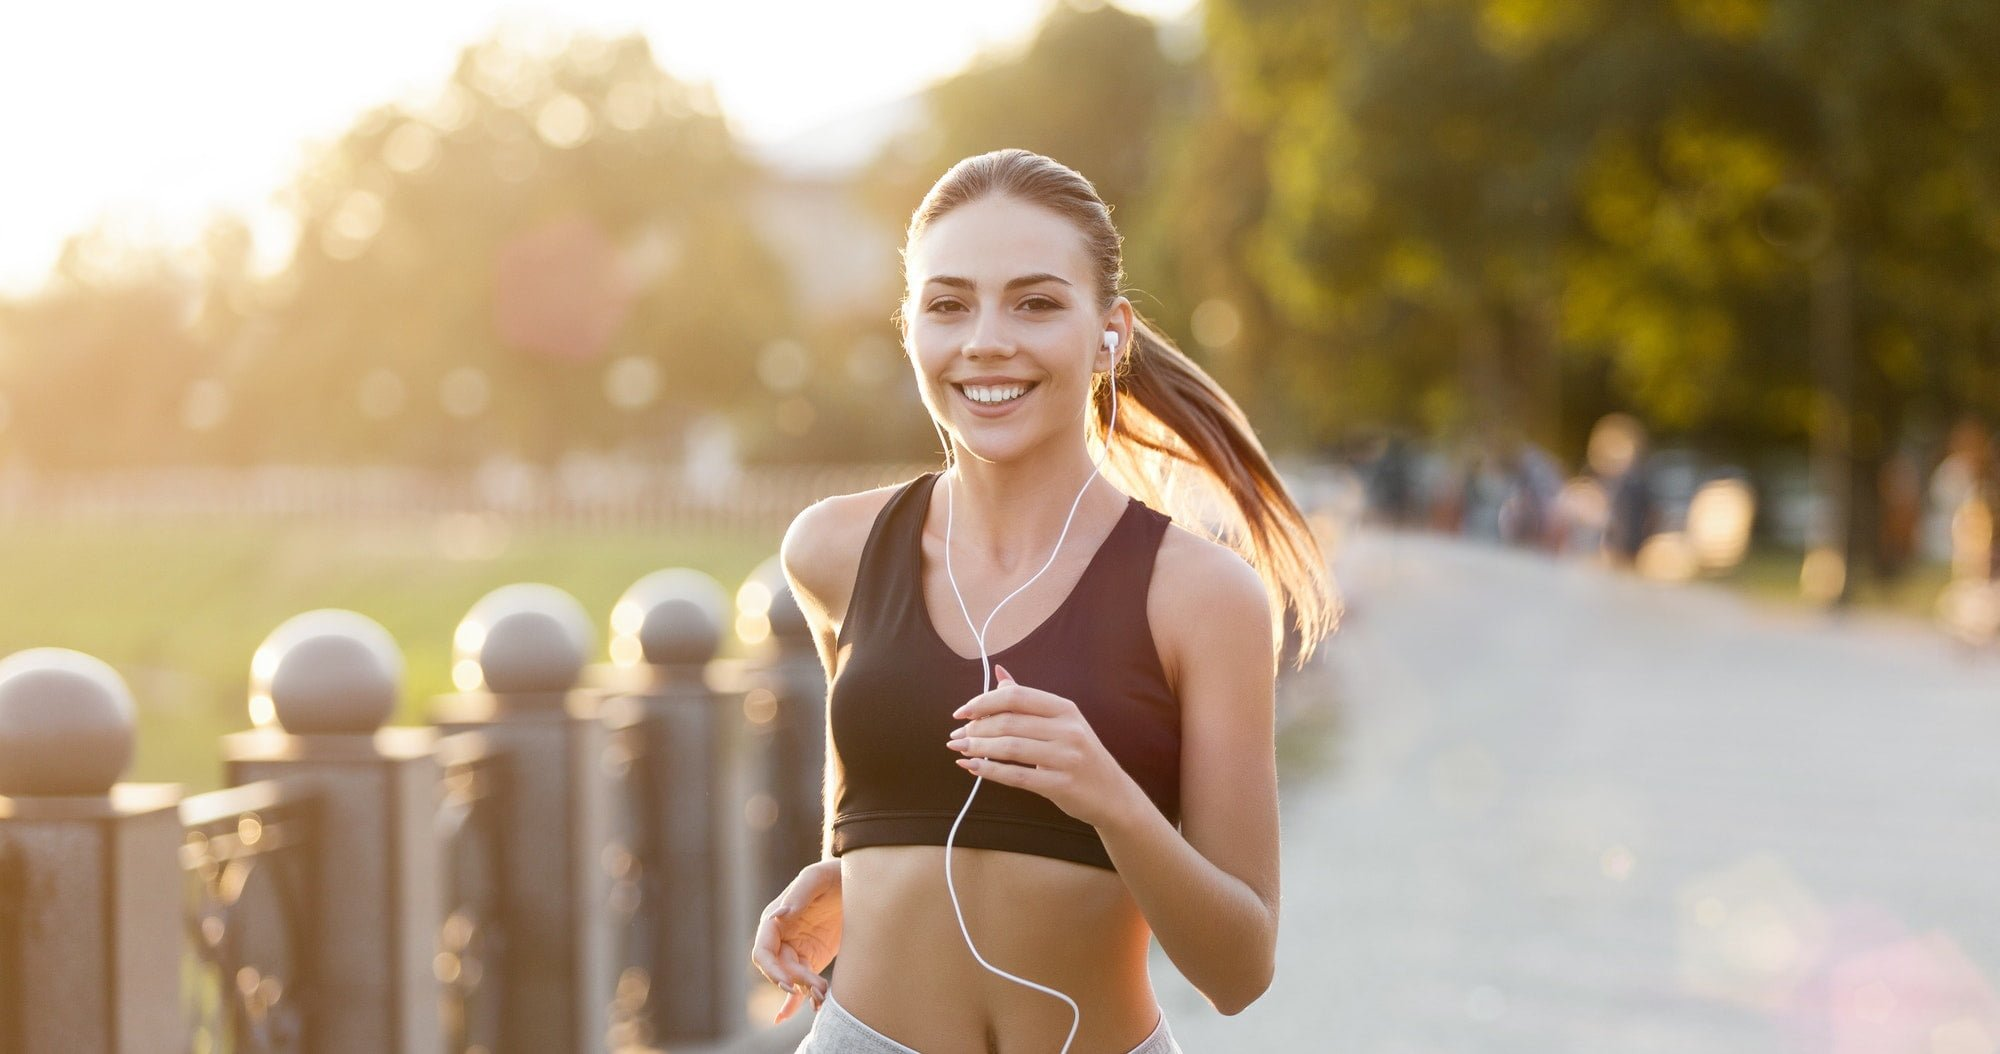 Cheerful woman with headphones running in park